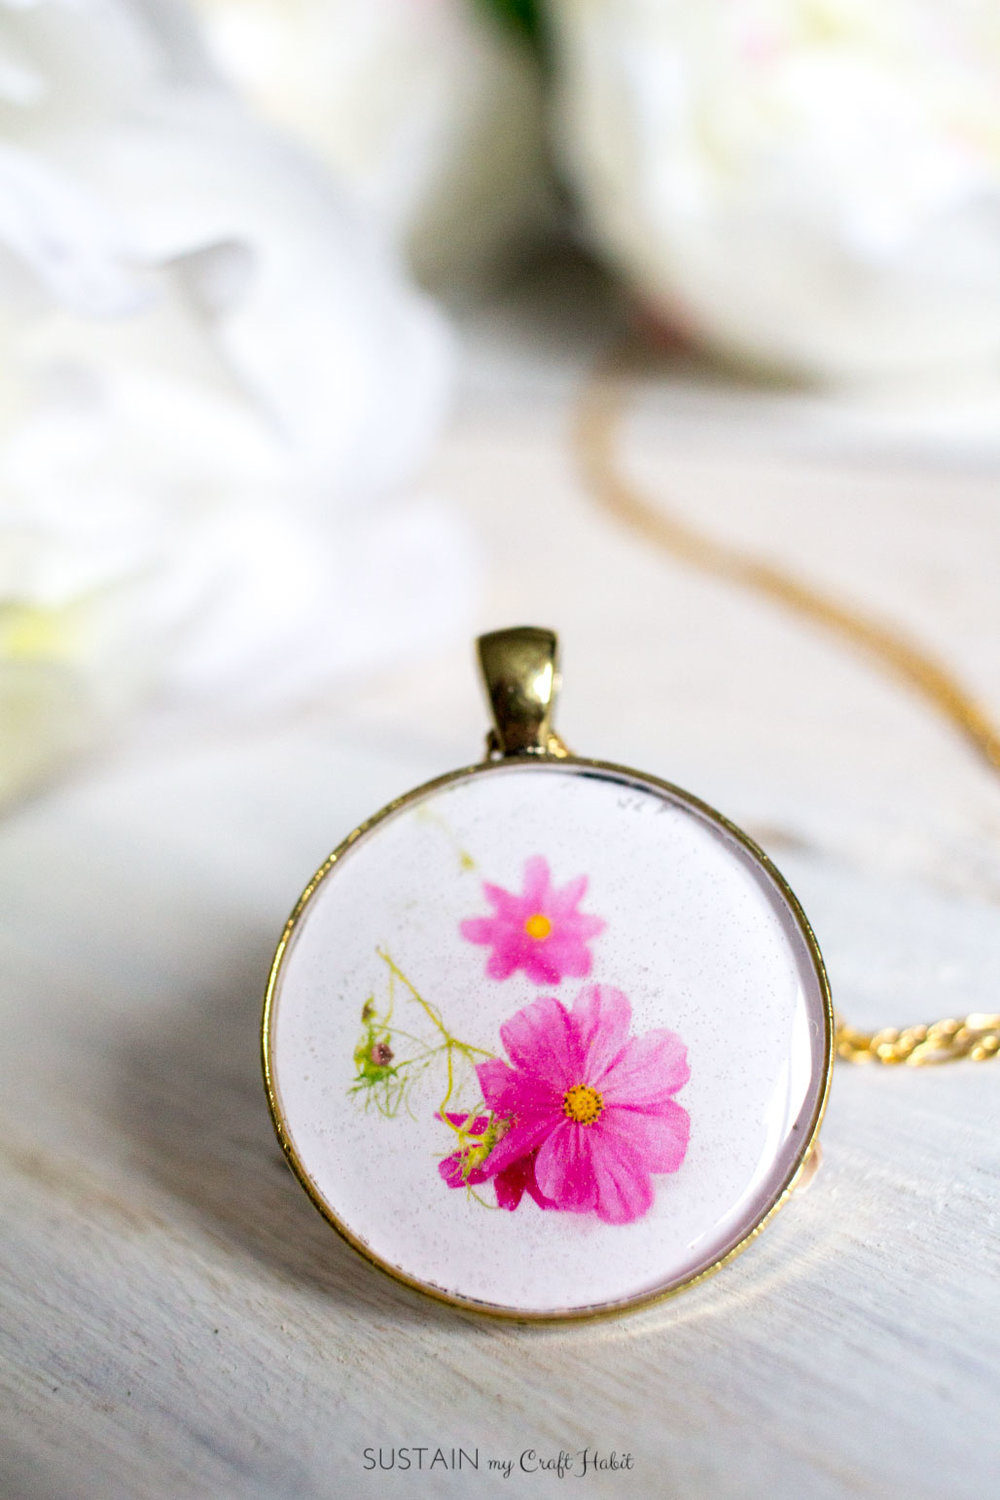 Learn how to make your own birth month flower resin jewelry. A thoughtful and unique gift idea for her for Mother's Day, a birthday, bridesmaids or Christmas. [ad]